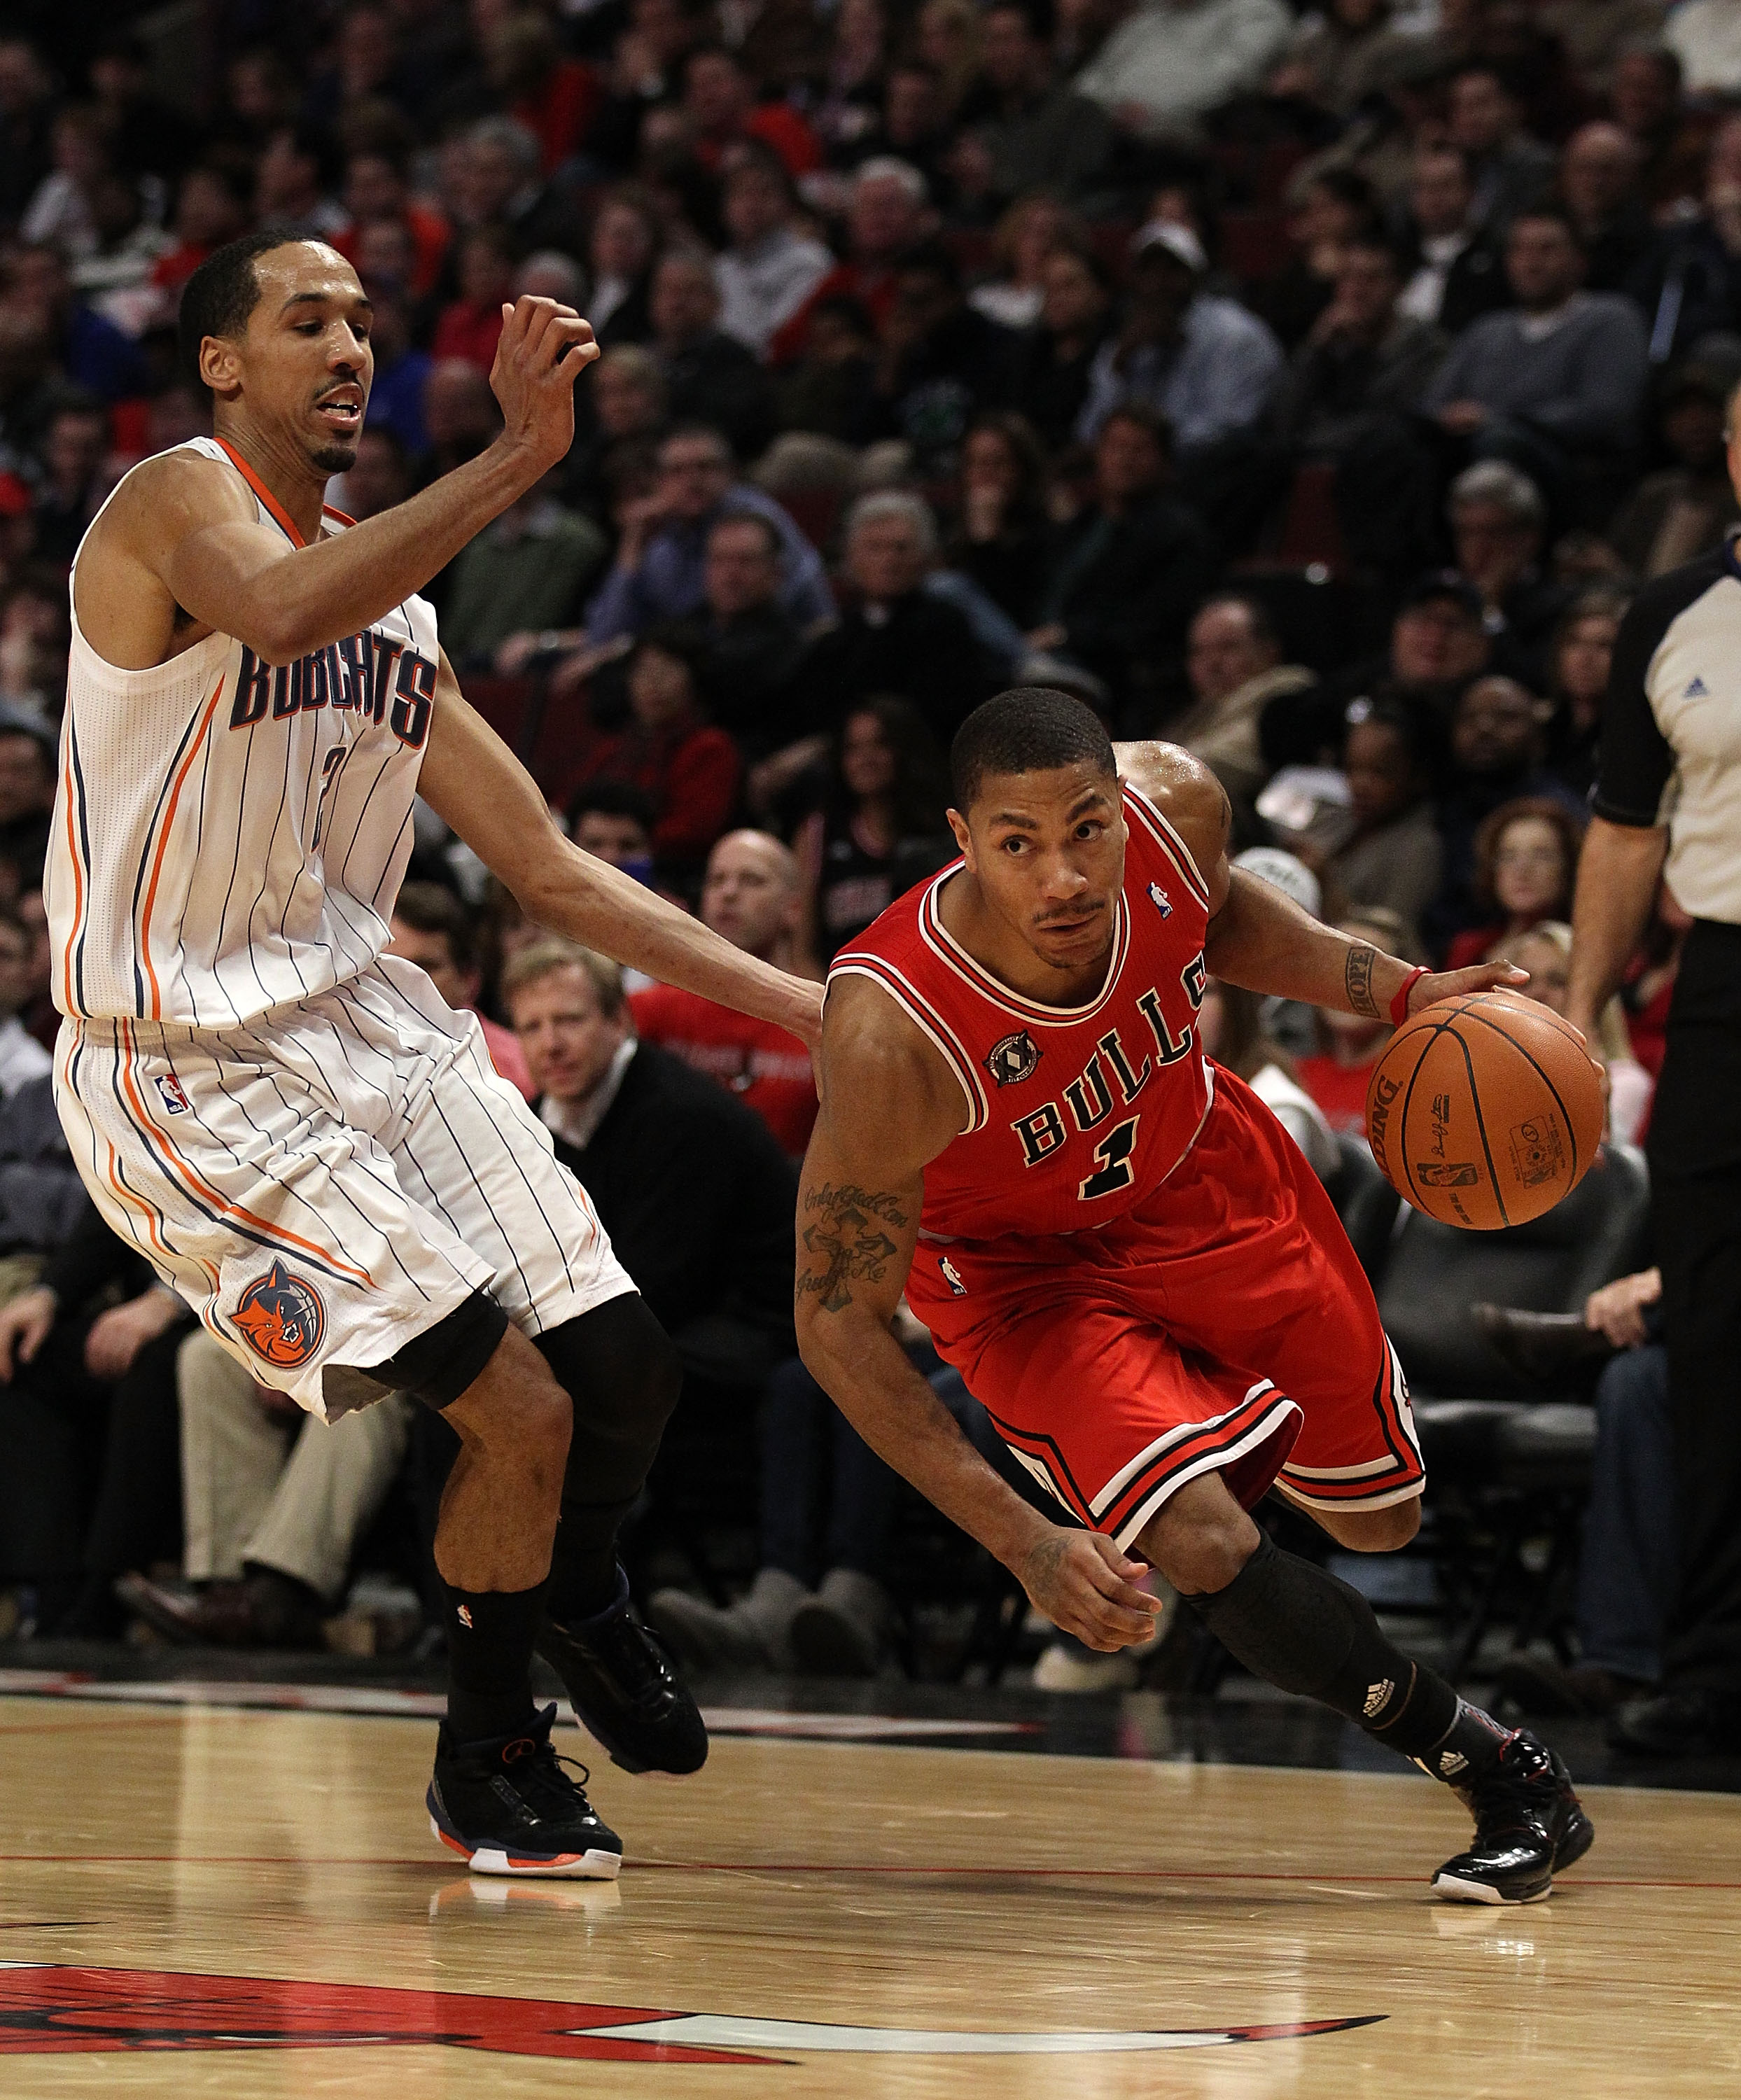 CHICAGO, IL - FEBRUARY 15: Derrick Rose #1 of the Chicago Bulls drives past Shaun Livingston #2 of the Charlotte Bobcats at the United Center on February 15, 2011 in Chicago, Illinois. The Bulls defeated the Bobcats 106-94. NOTE TO USER: User expressly ac